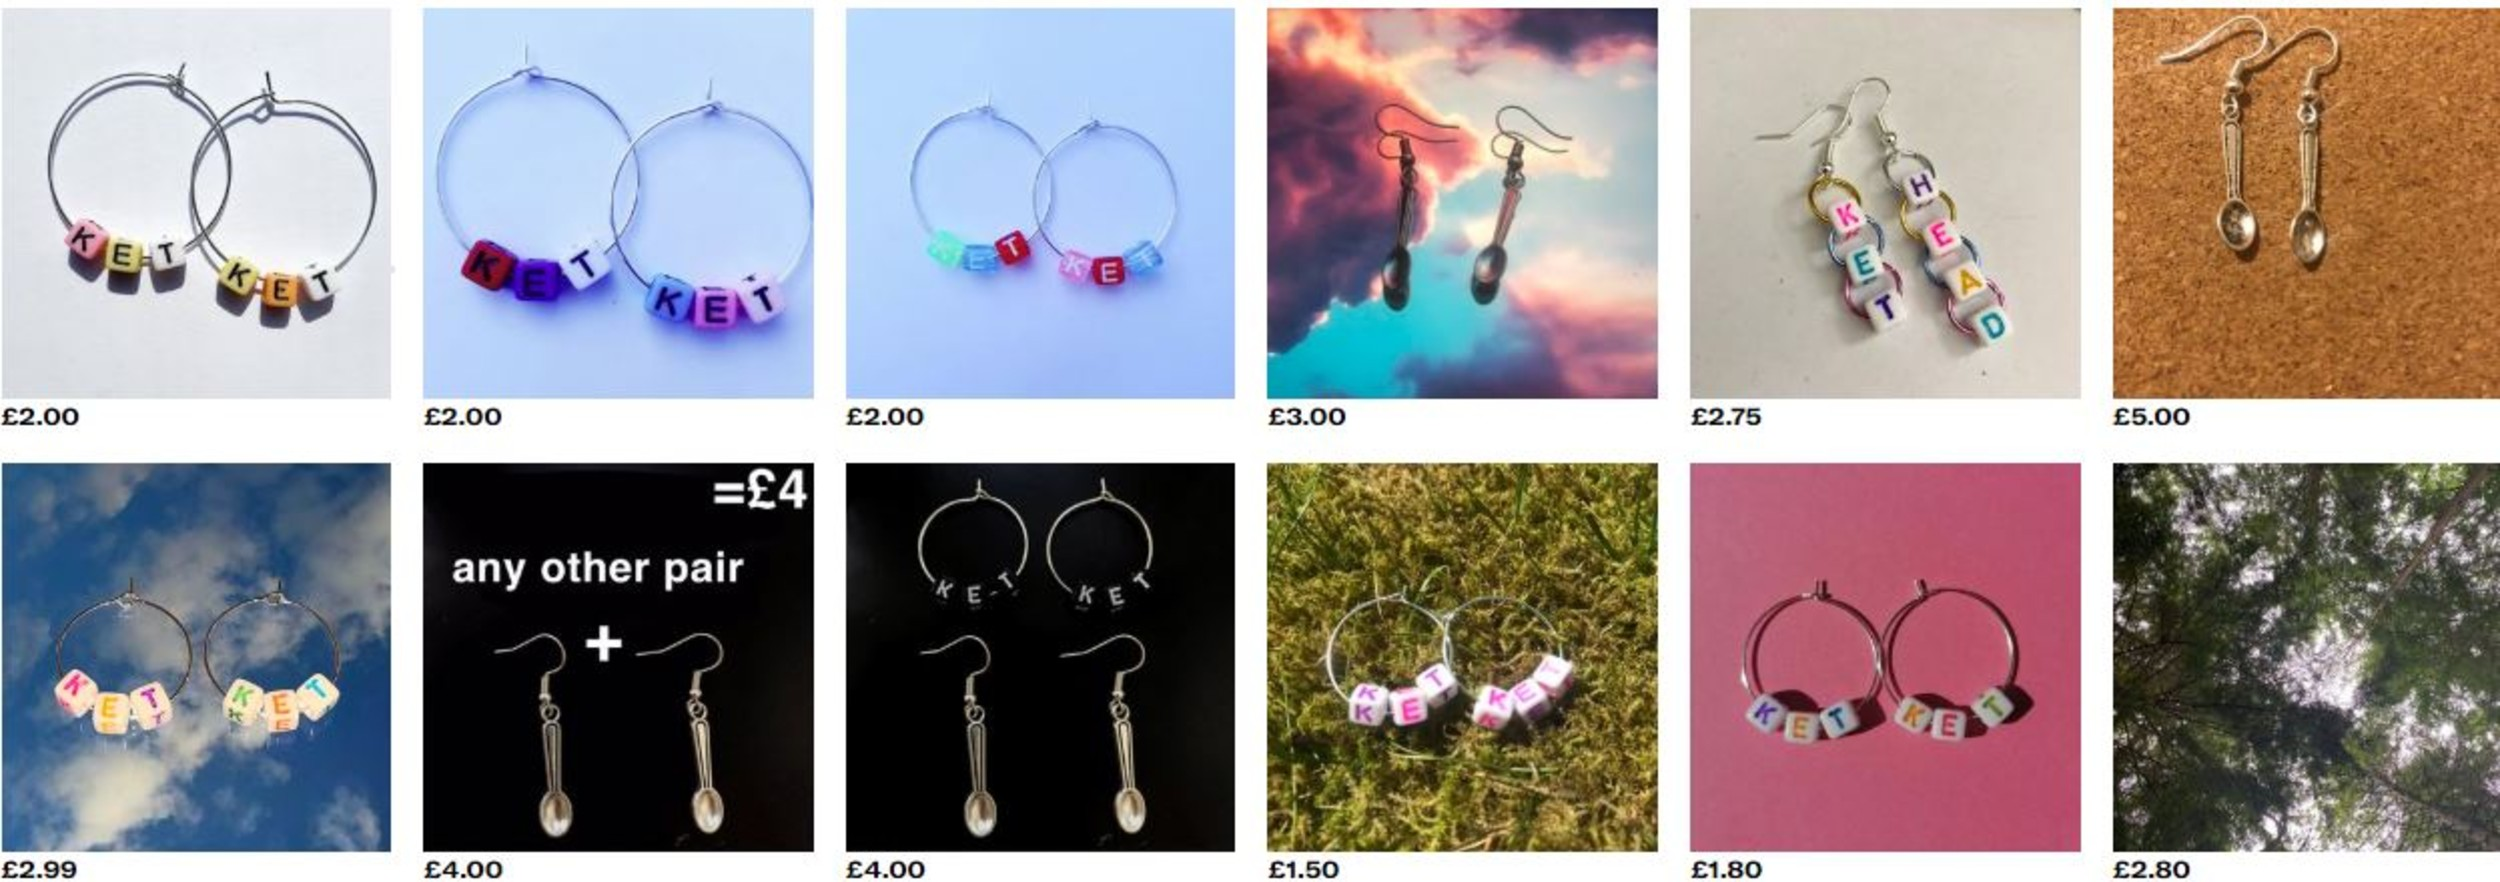 A wide range of drug inspired accessories were available on Depop.- Viral News